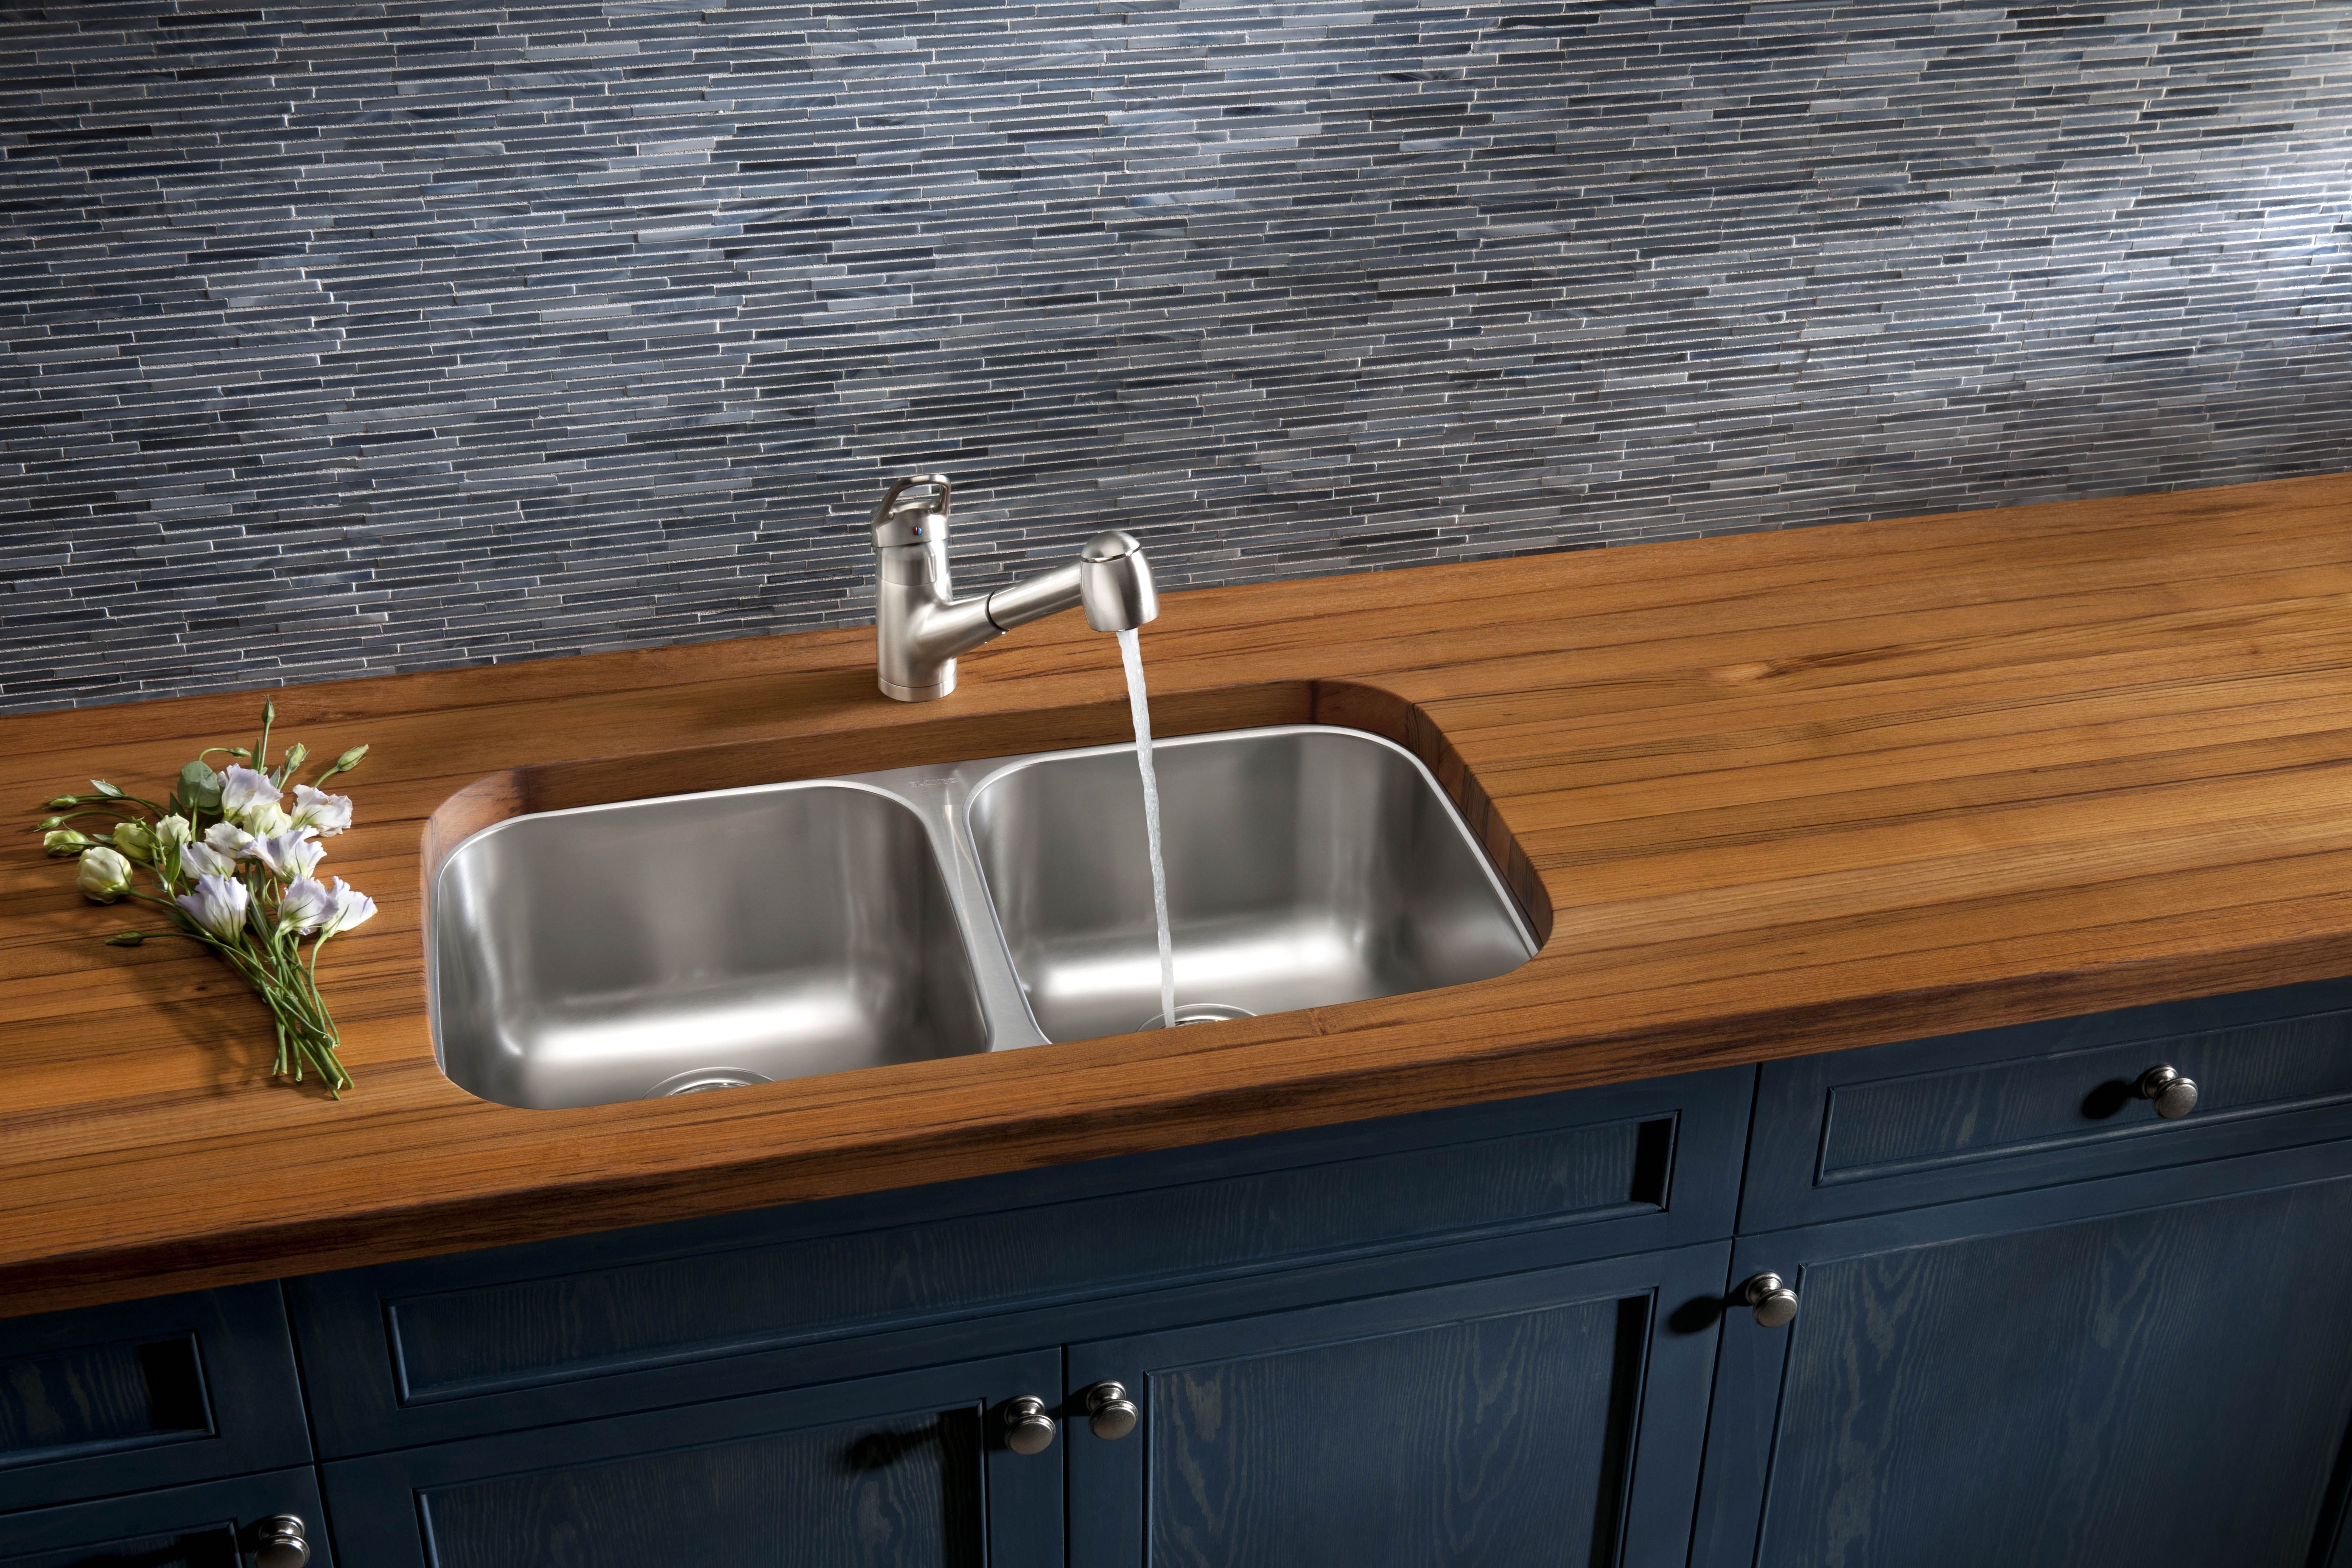 What Kind Of Backsplash Goes With Wood Countertops Wood